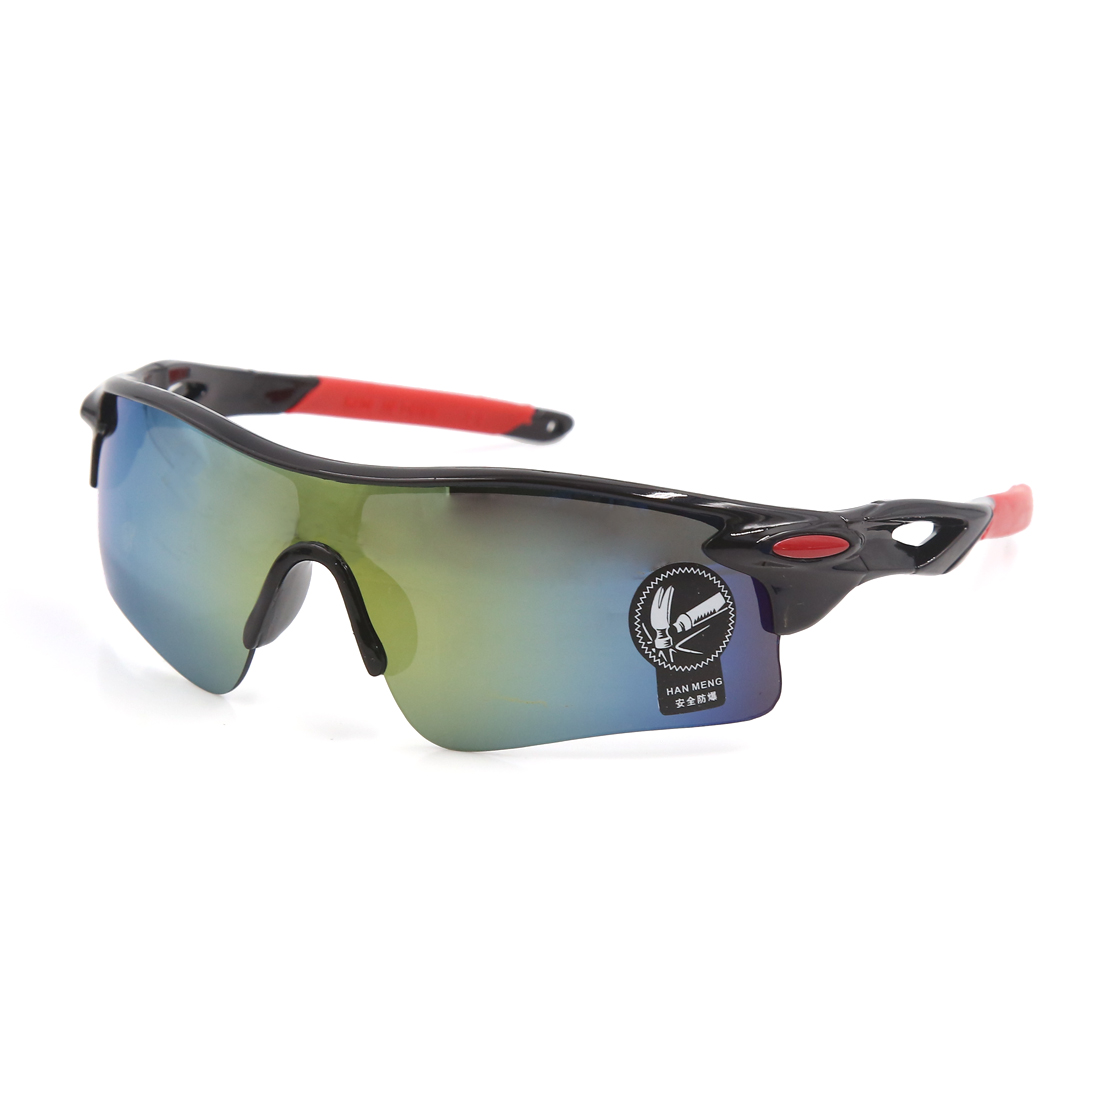 Outdoor Sports Bike Cycling Black Red Half Frame Colorful Lens Eyewear Goggles